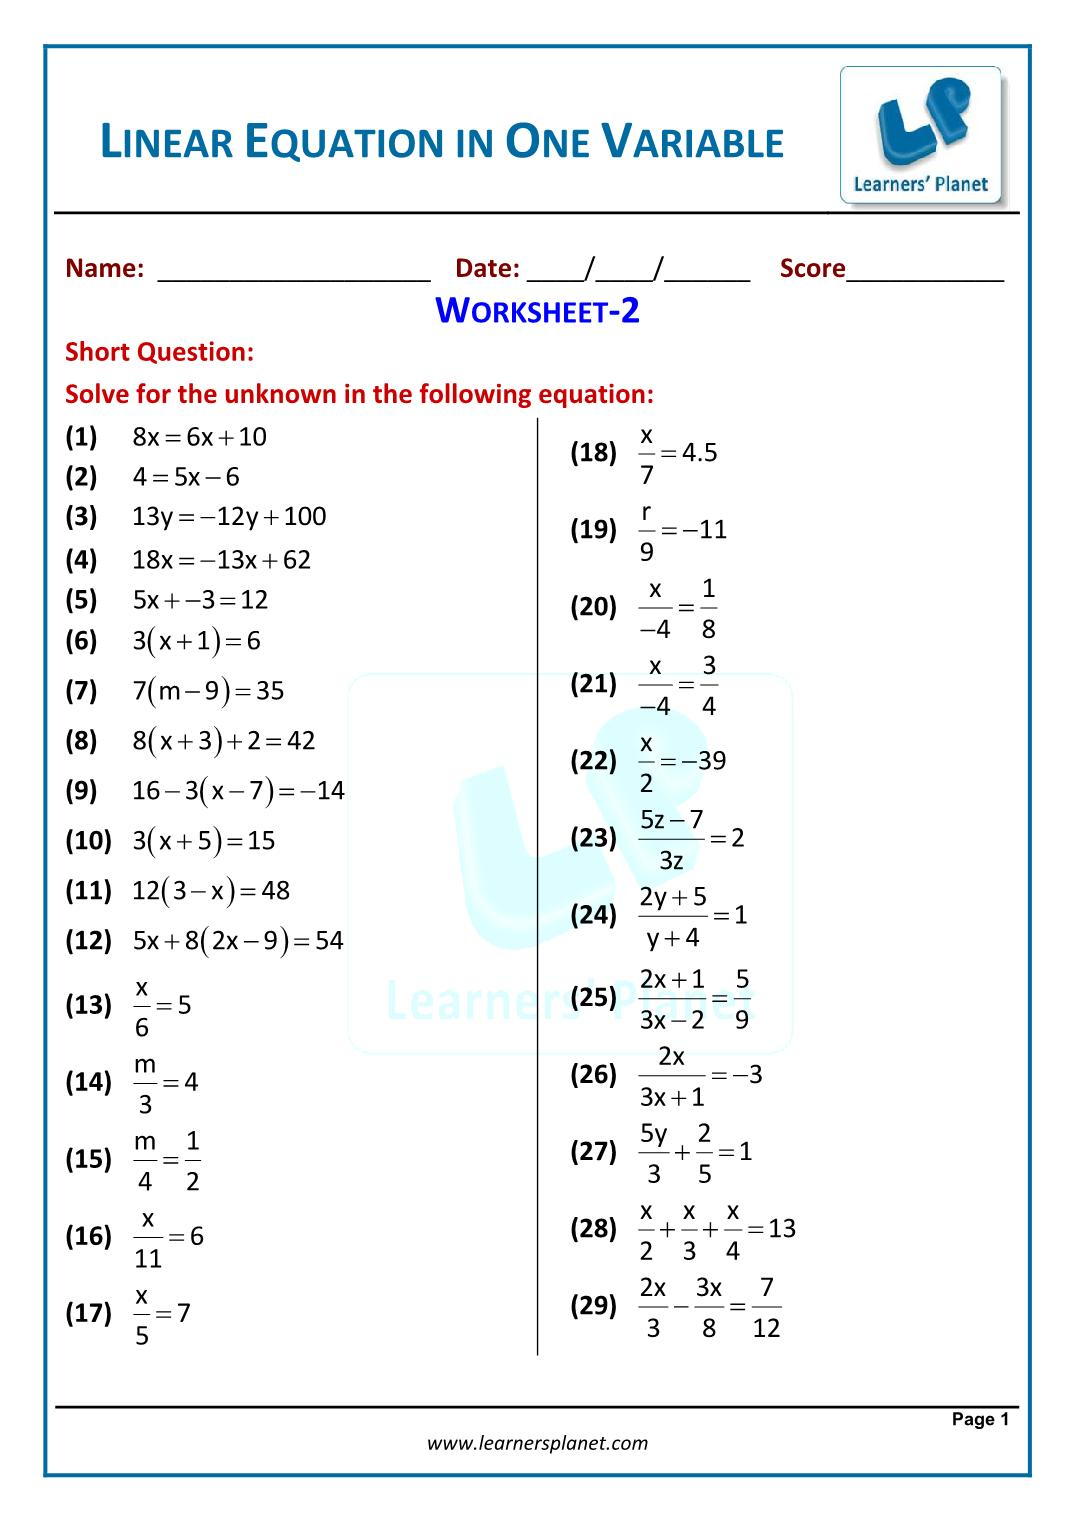 Linear Equation In One Variable Worksheet